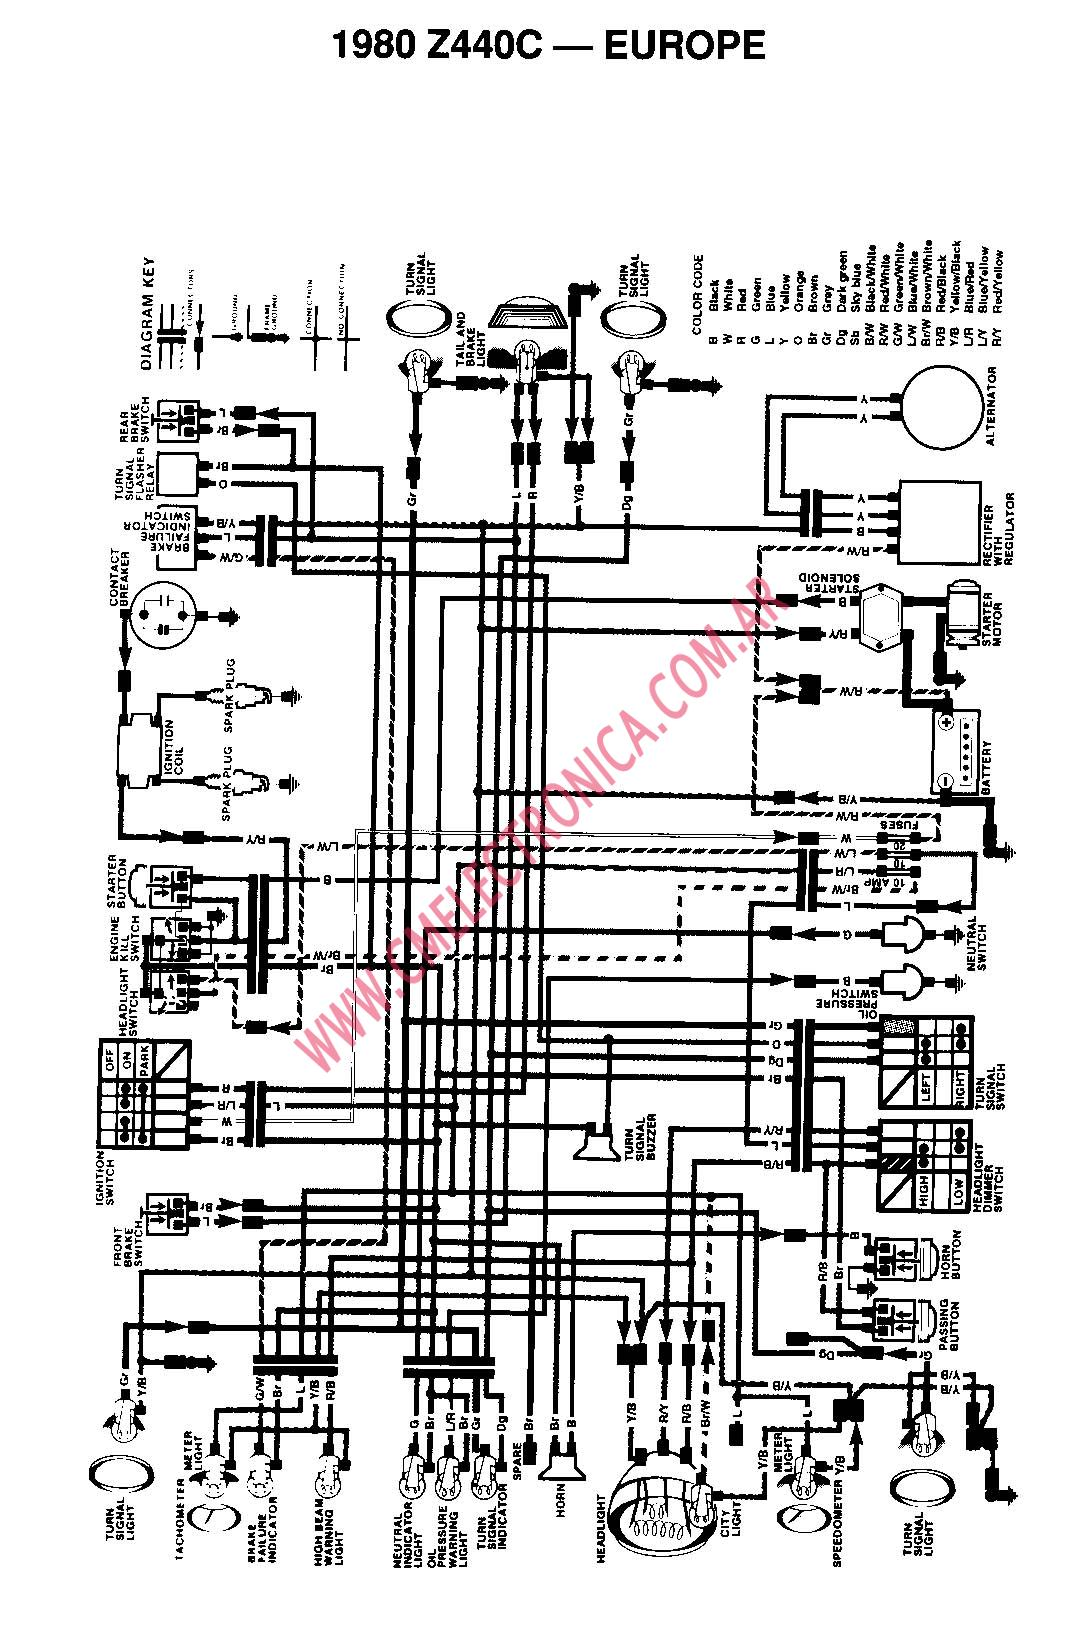 Pin Diagram-of-kawasaki-atv-parts-1985-klf185-a1-bayou-185